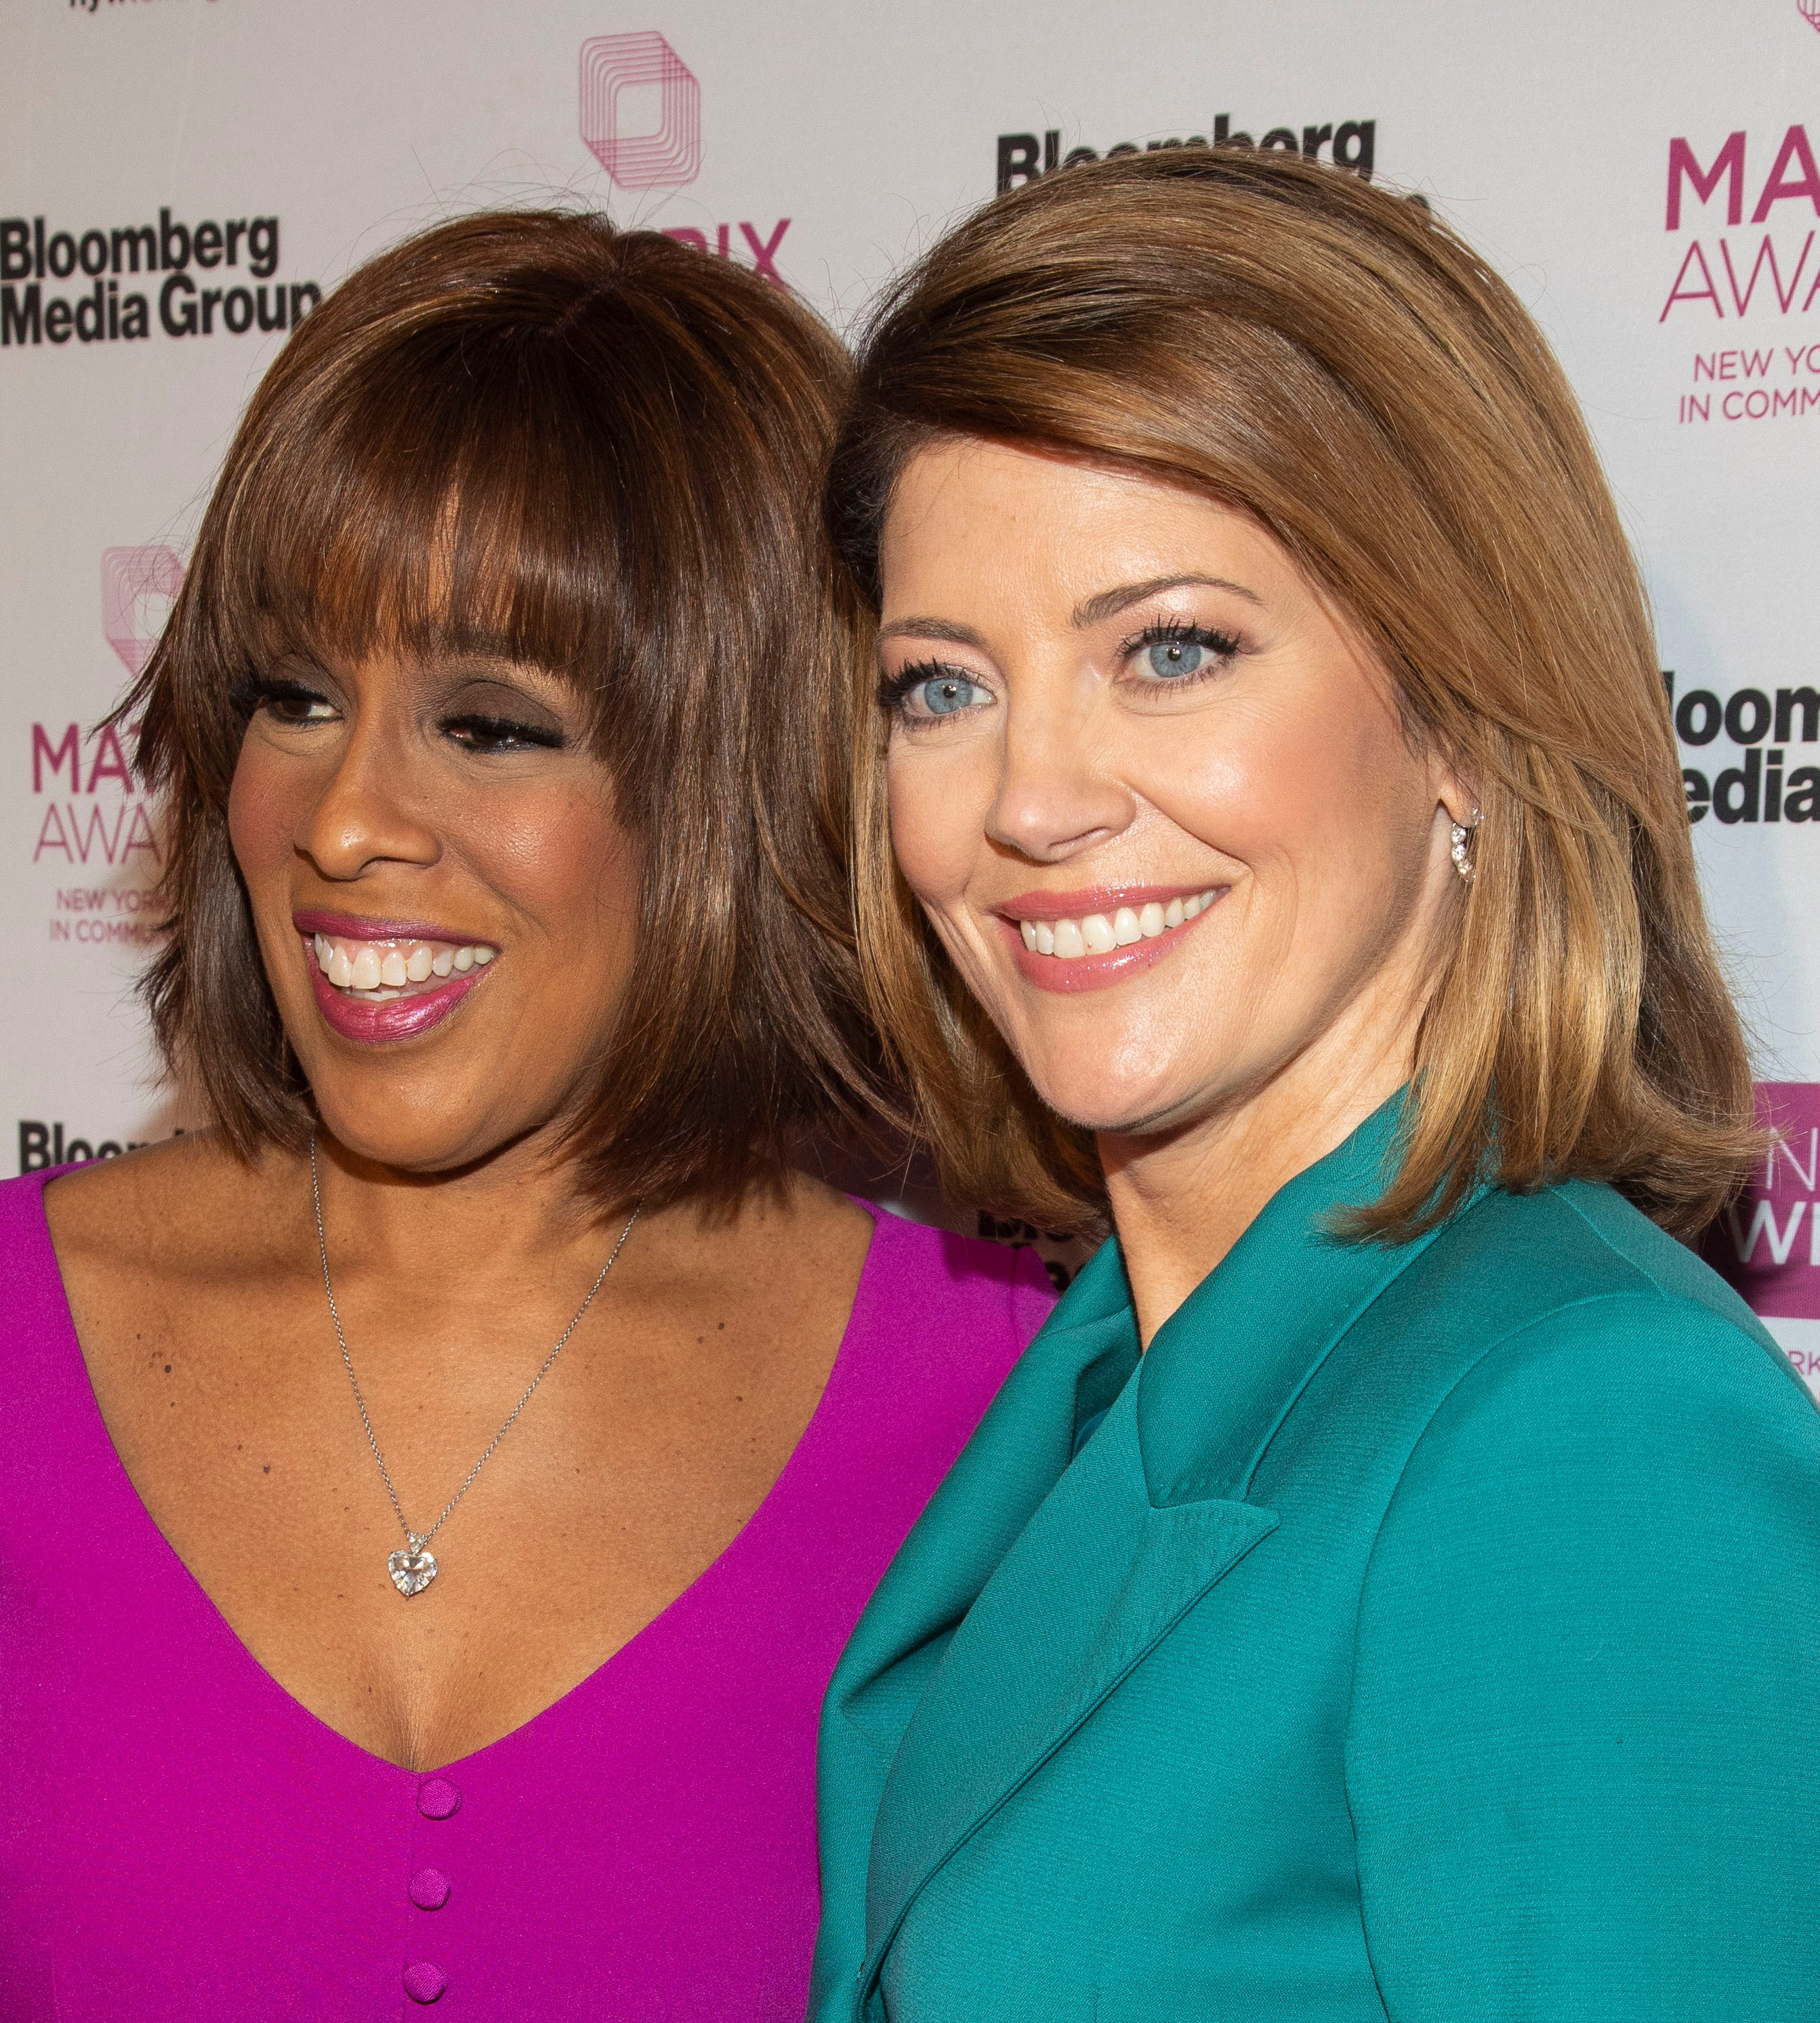 Gayle King, left, and Norah O'Donnell, right, attend the Matrix Awards at the Sheraton New York Times Square on Monday, May 6, 2019, in New York.